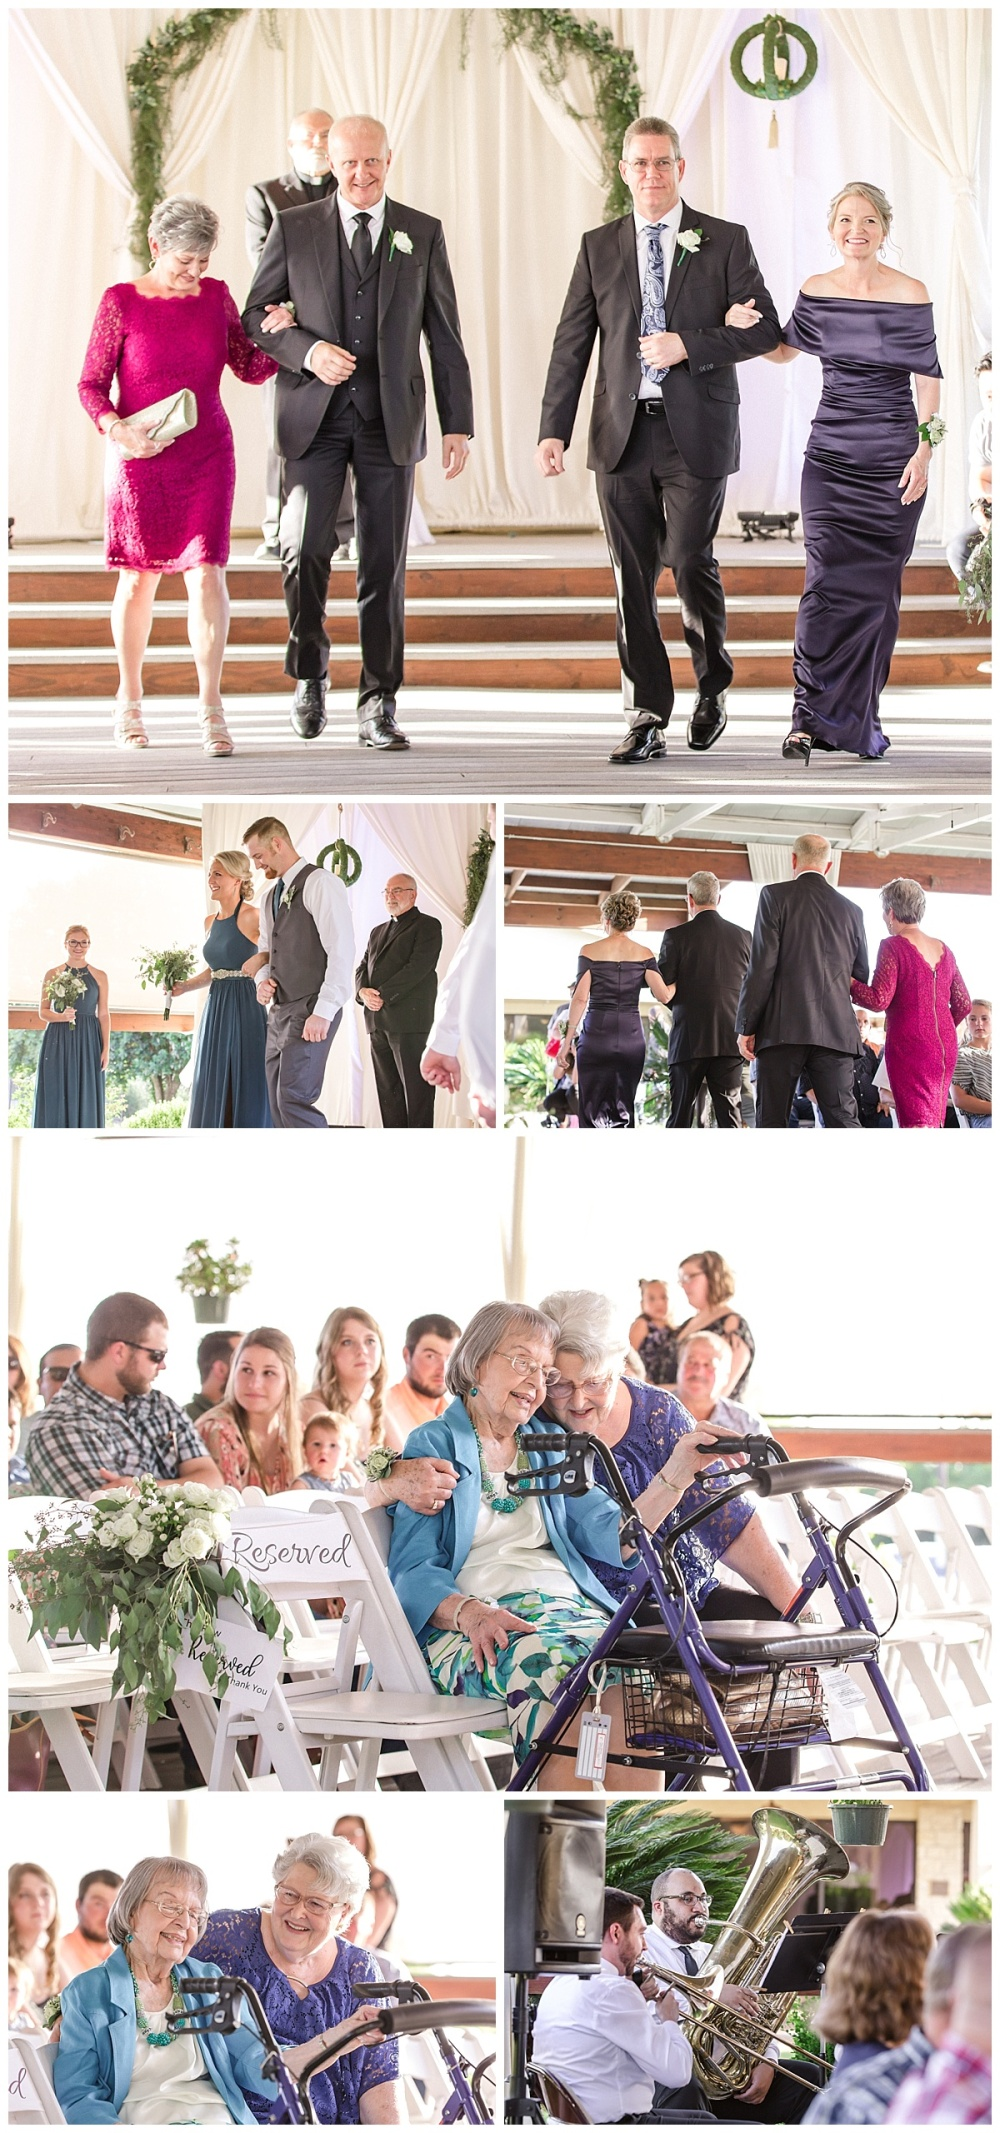 Carly-Barton-Photography-Wedding-Photos-Granberry-Hills-Event-Facility-Ryan-Chelsea-San-Antonio-Texas_0030